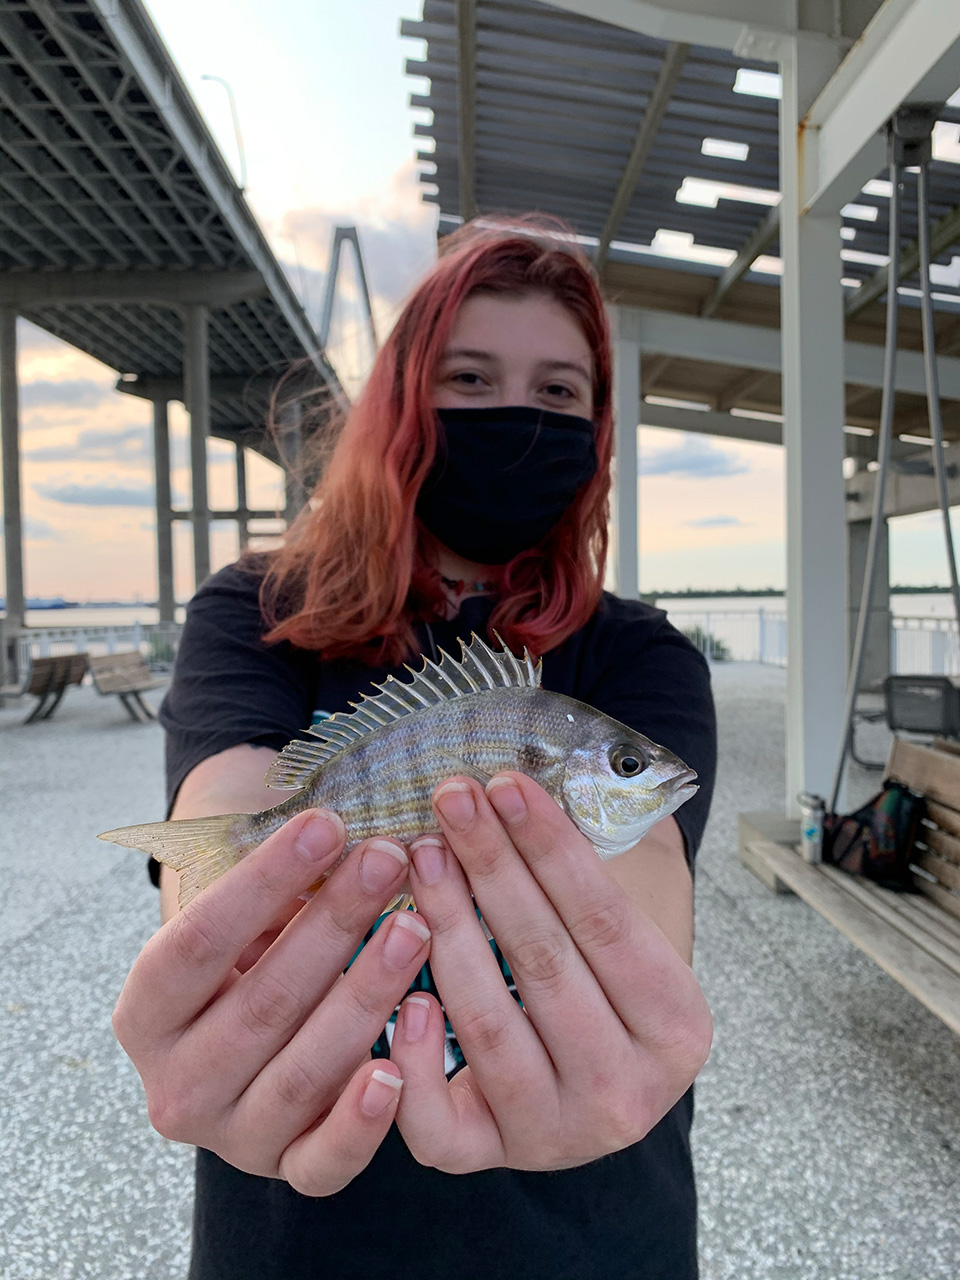 CofC students participate in Campus Rec's Fishing Friday's at Mount Pleasant's Waterfront Park.